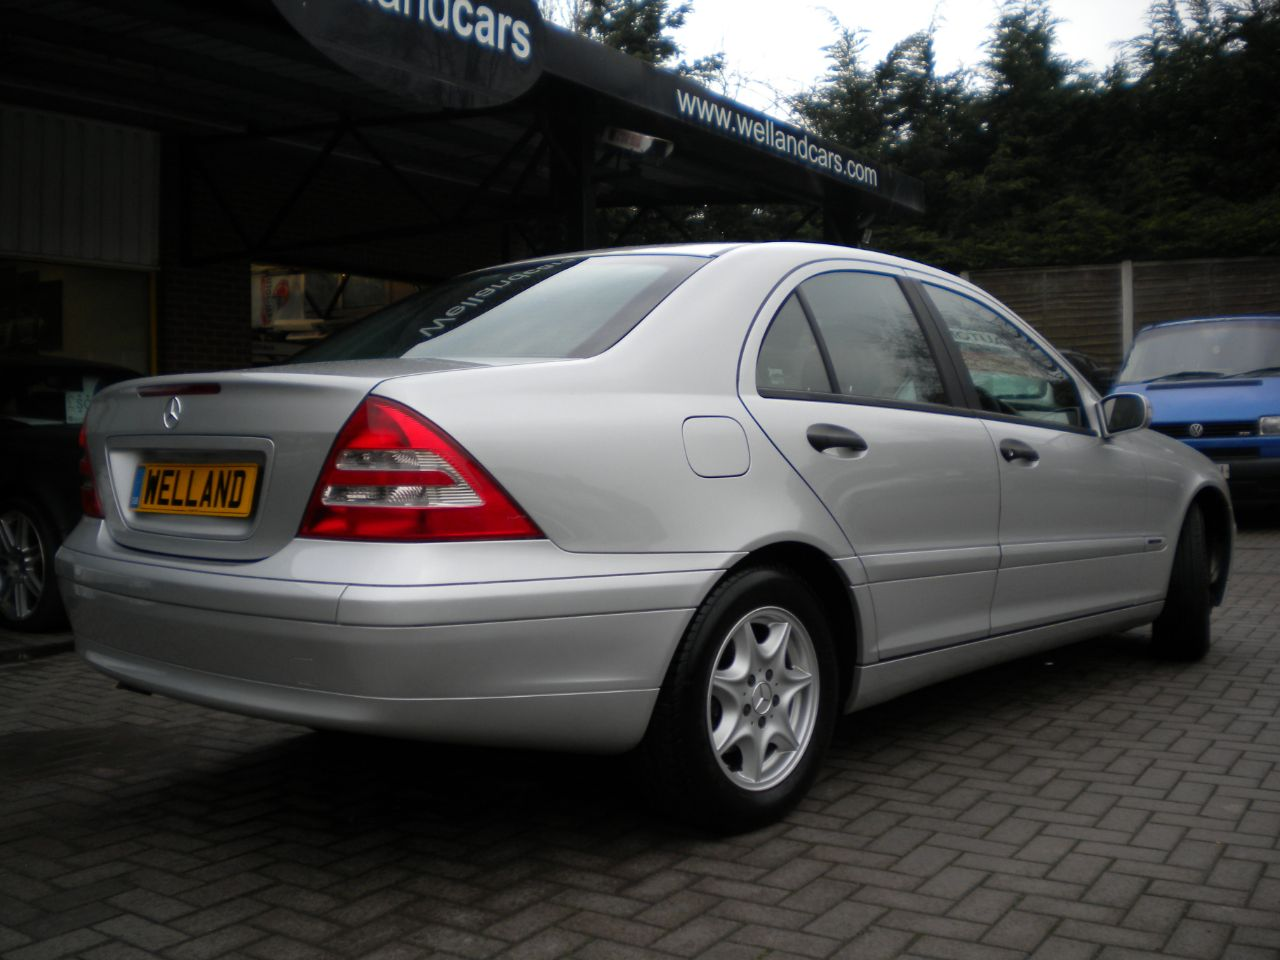 mercedes benz c200 gumtree with 265019 Second Hand Mercedes Kompressor For Sale on Mercedes Benz Ml 2006 Facelift together with 1236492866 together with 1171027335 furthermore 1156829710 as well 1188119041.